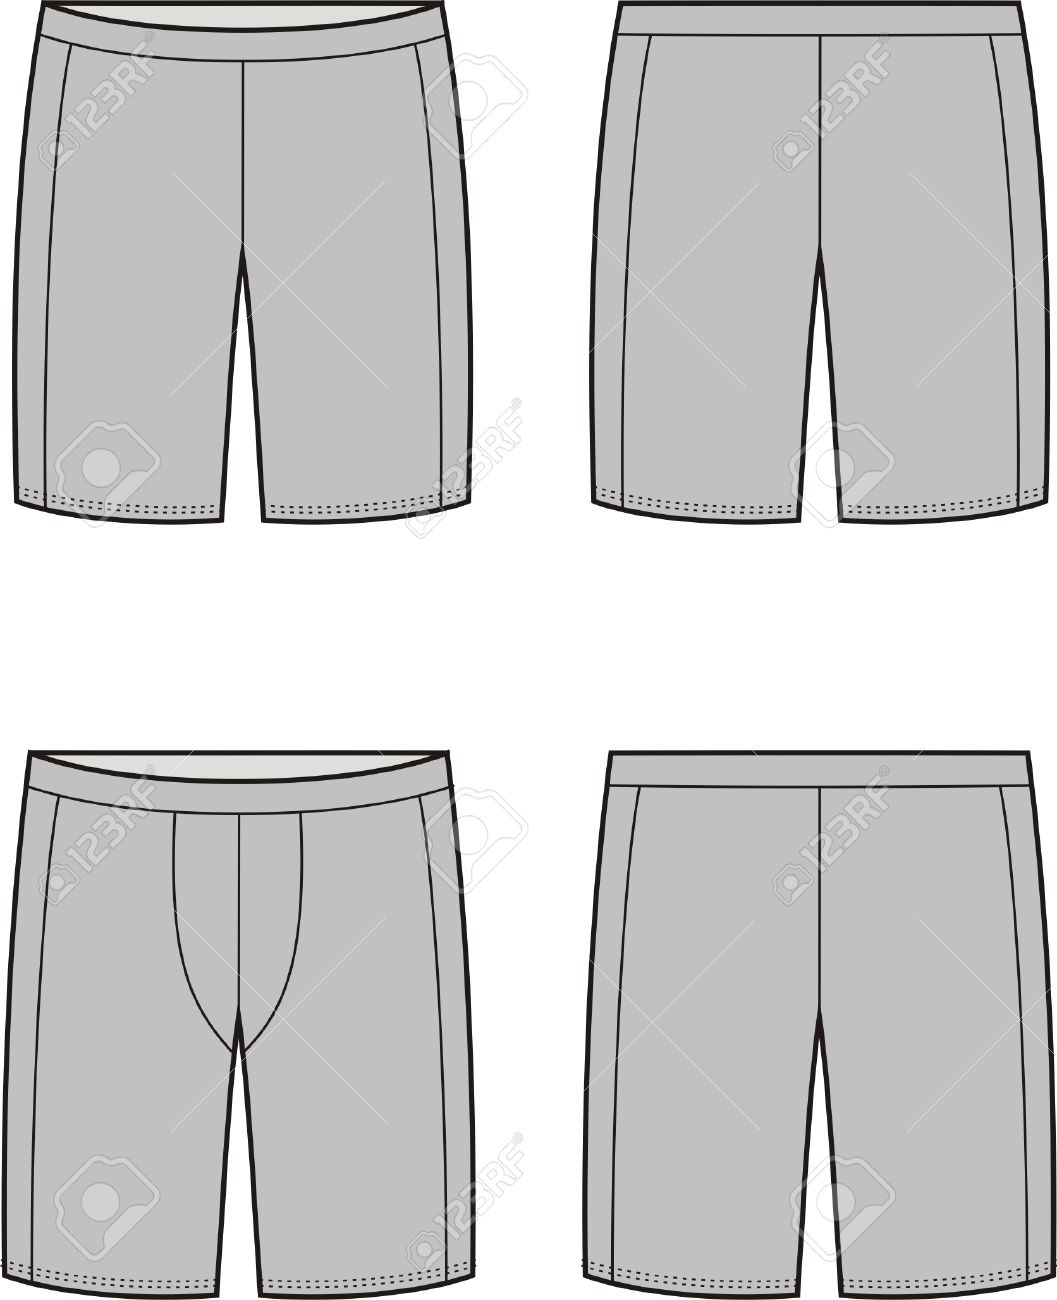 6fcd7a574f0e4 Vector - Vector illustration of mens and womens sport shorts. Front and  back views